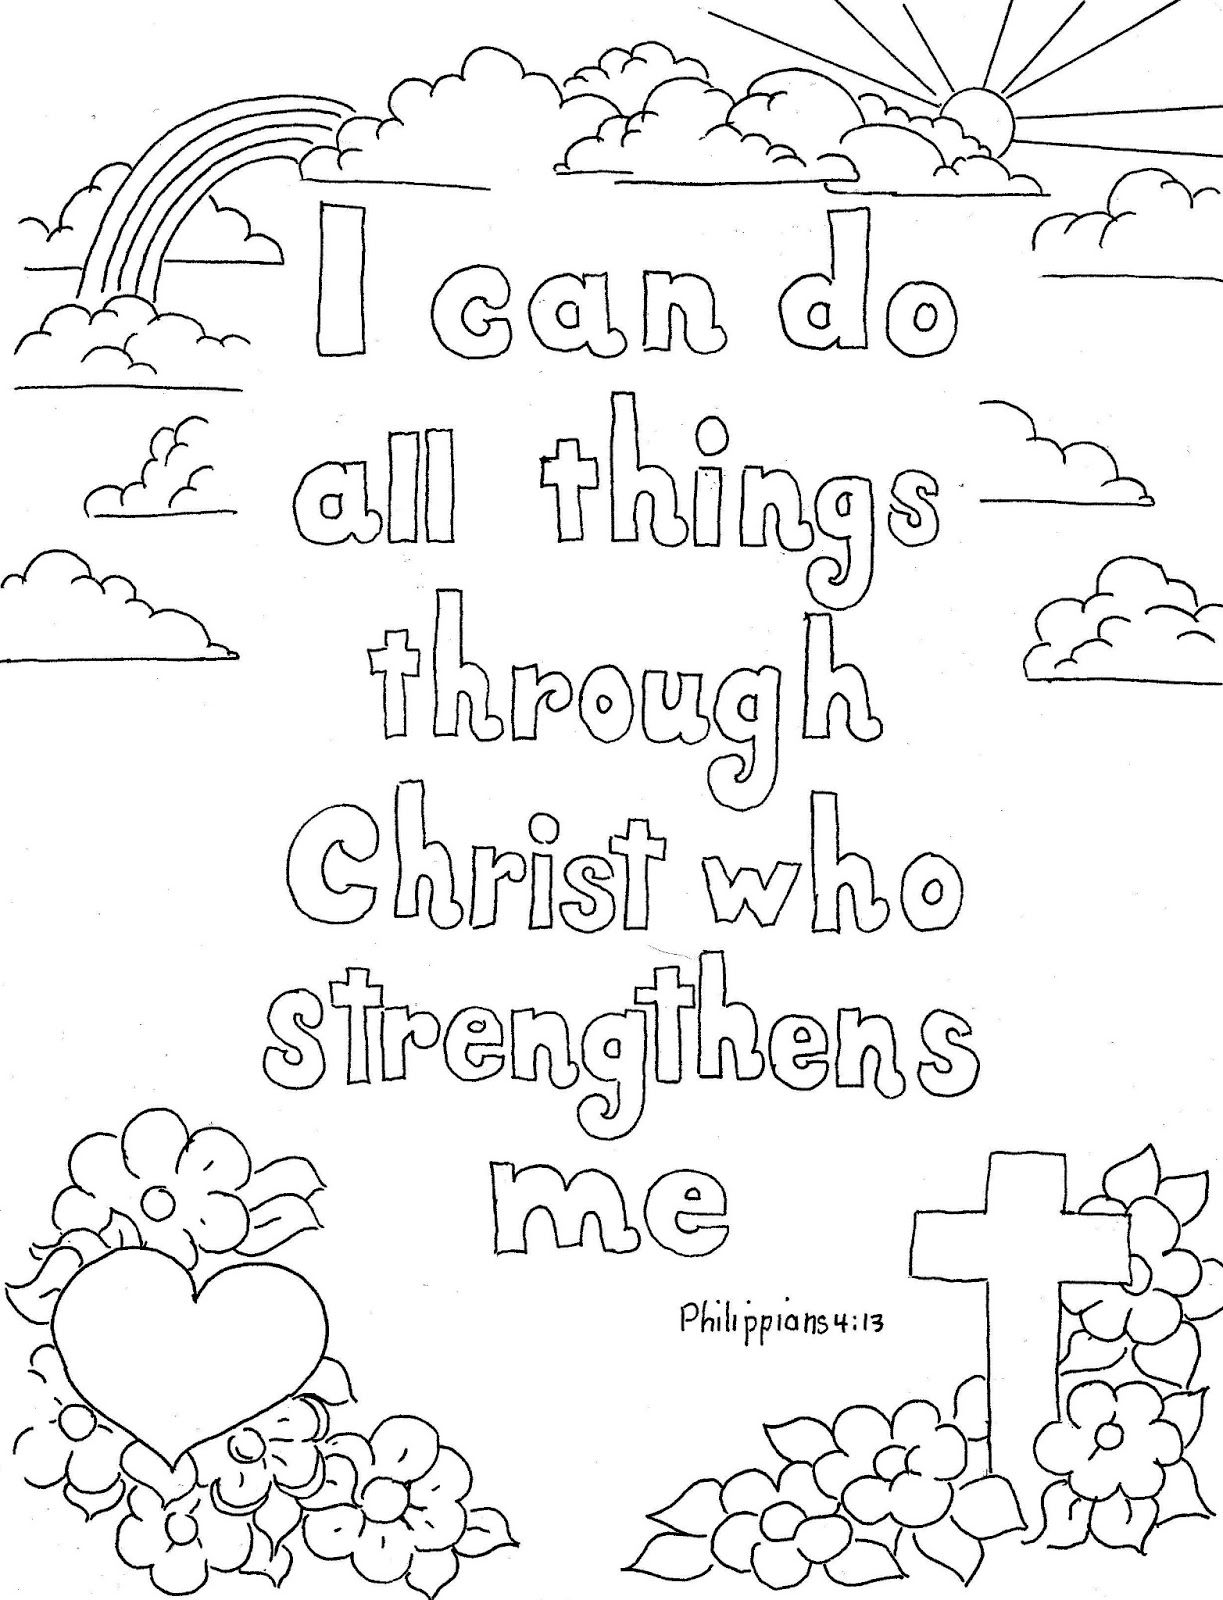 Coloring pages for kids by mr adron philippians 413 print and color page